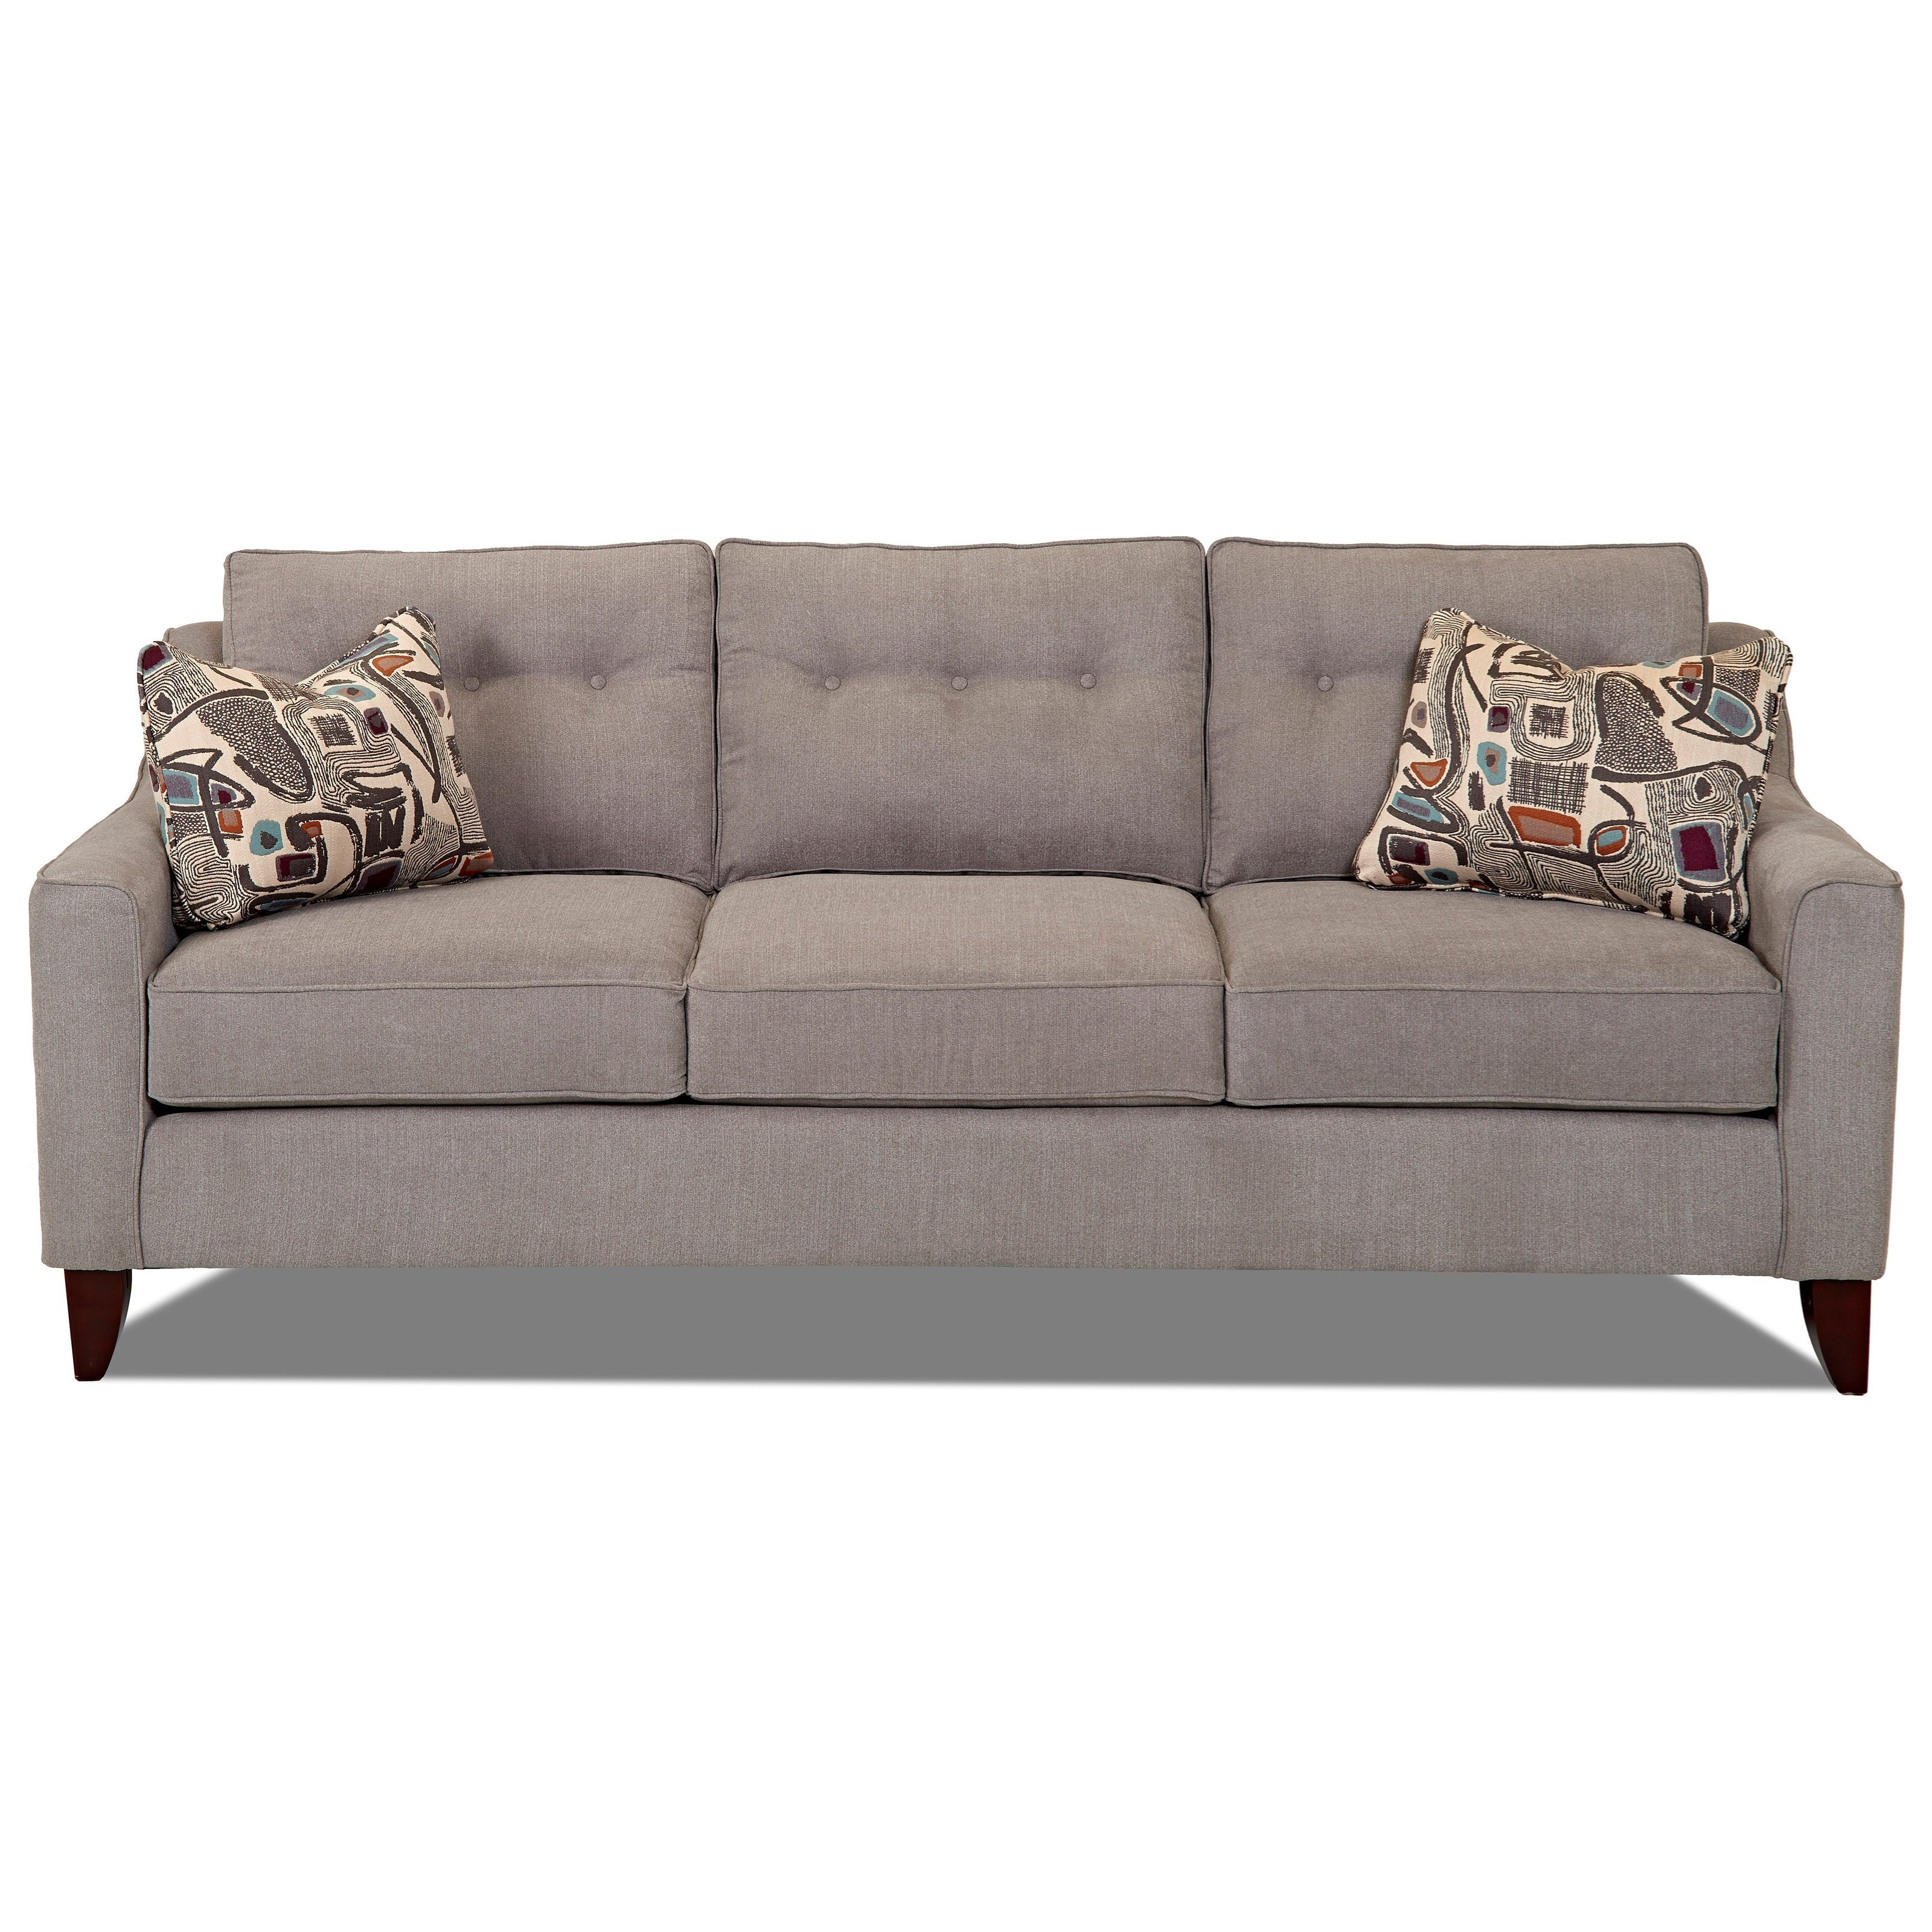 Klaussner Audrina Mid Century Modern Style Sofa With Tufted Cushions |  Miskelly Furniture | Sofas